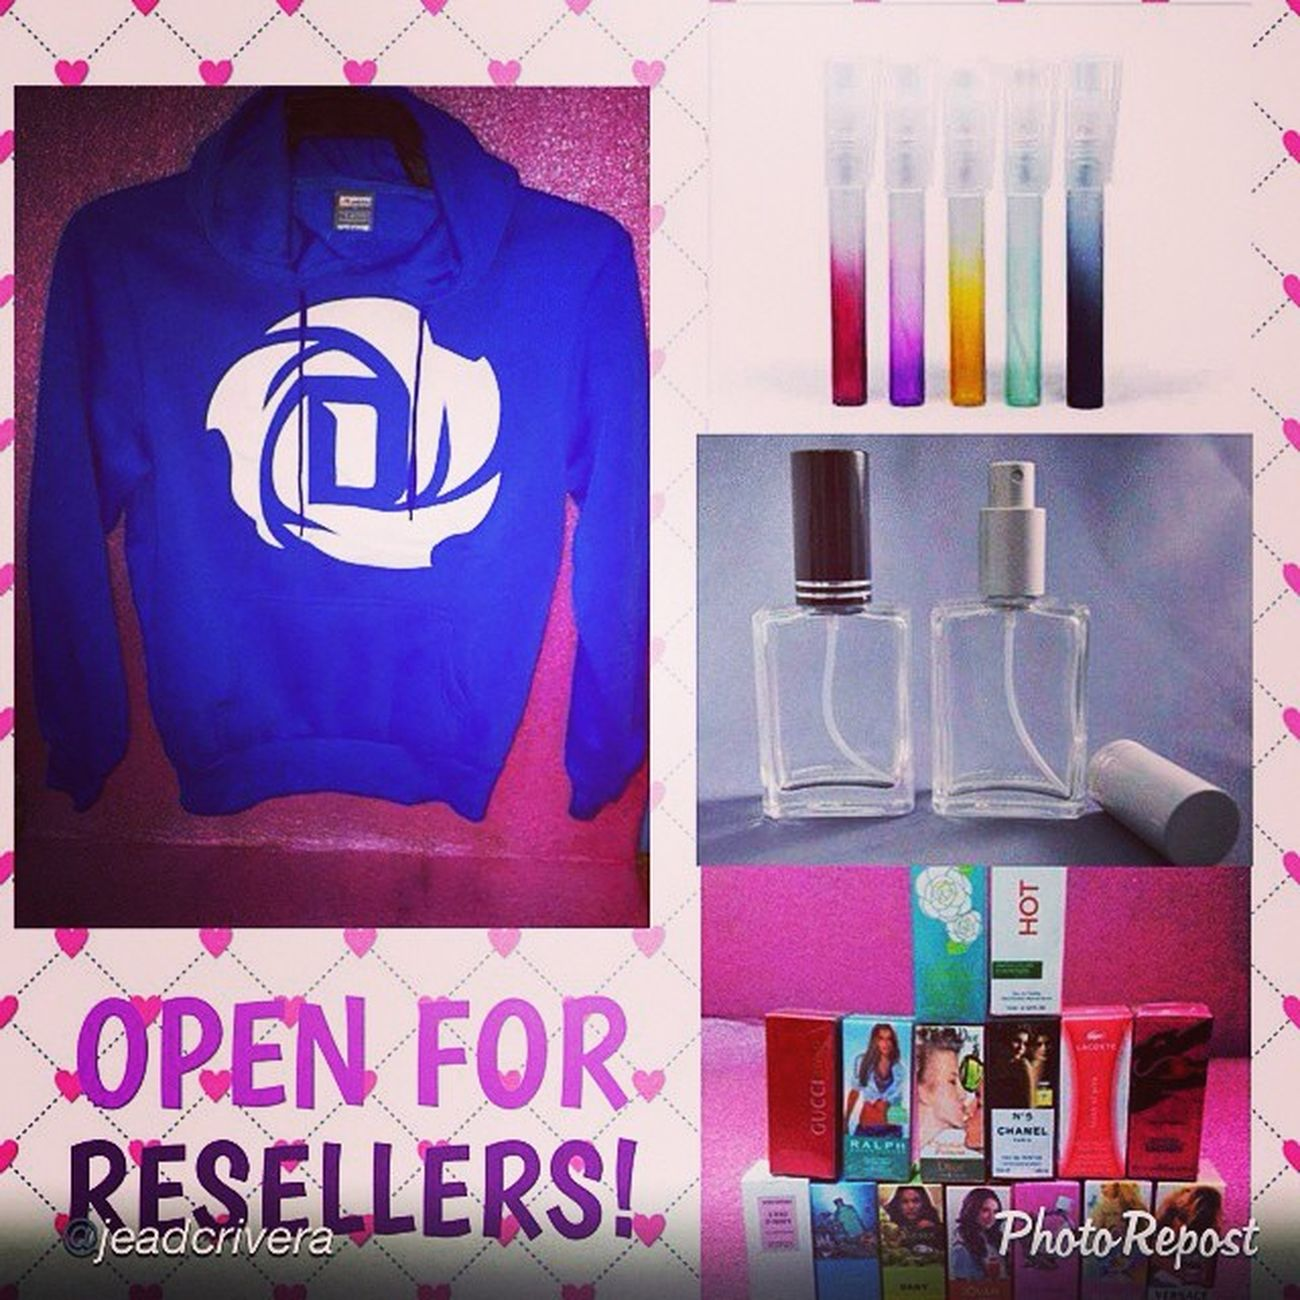 """by @jeadcrivera """"Want to have money this christmas? Or looking for affordable gifts and give aways! ASK US @ghiepereda / @buddyshoppe. :) Jackets HOODIES Inspiredperfumes Pocketperfumes gift love christmas affordable lookingfor saleph reseller onlineseller onlinebuyer onlineshop buddyshoppe"""" via @PhotoRepost_app"""